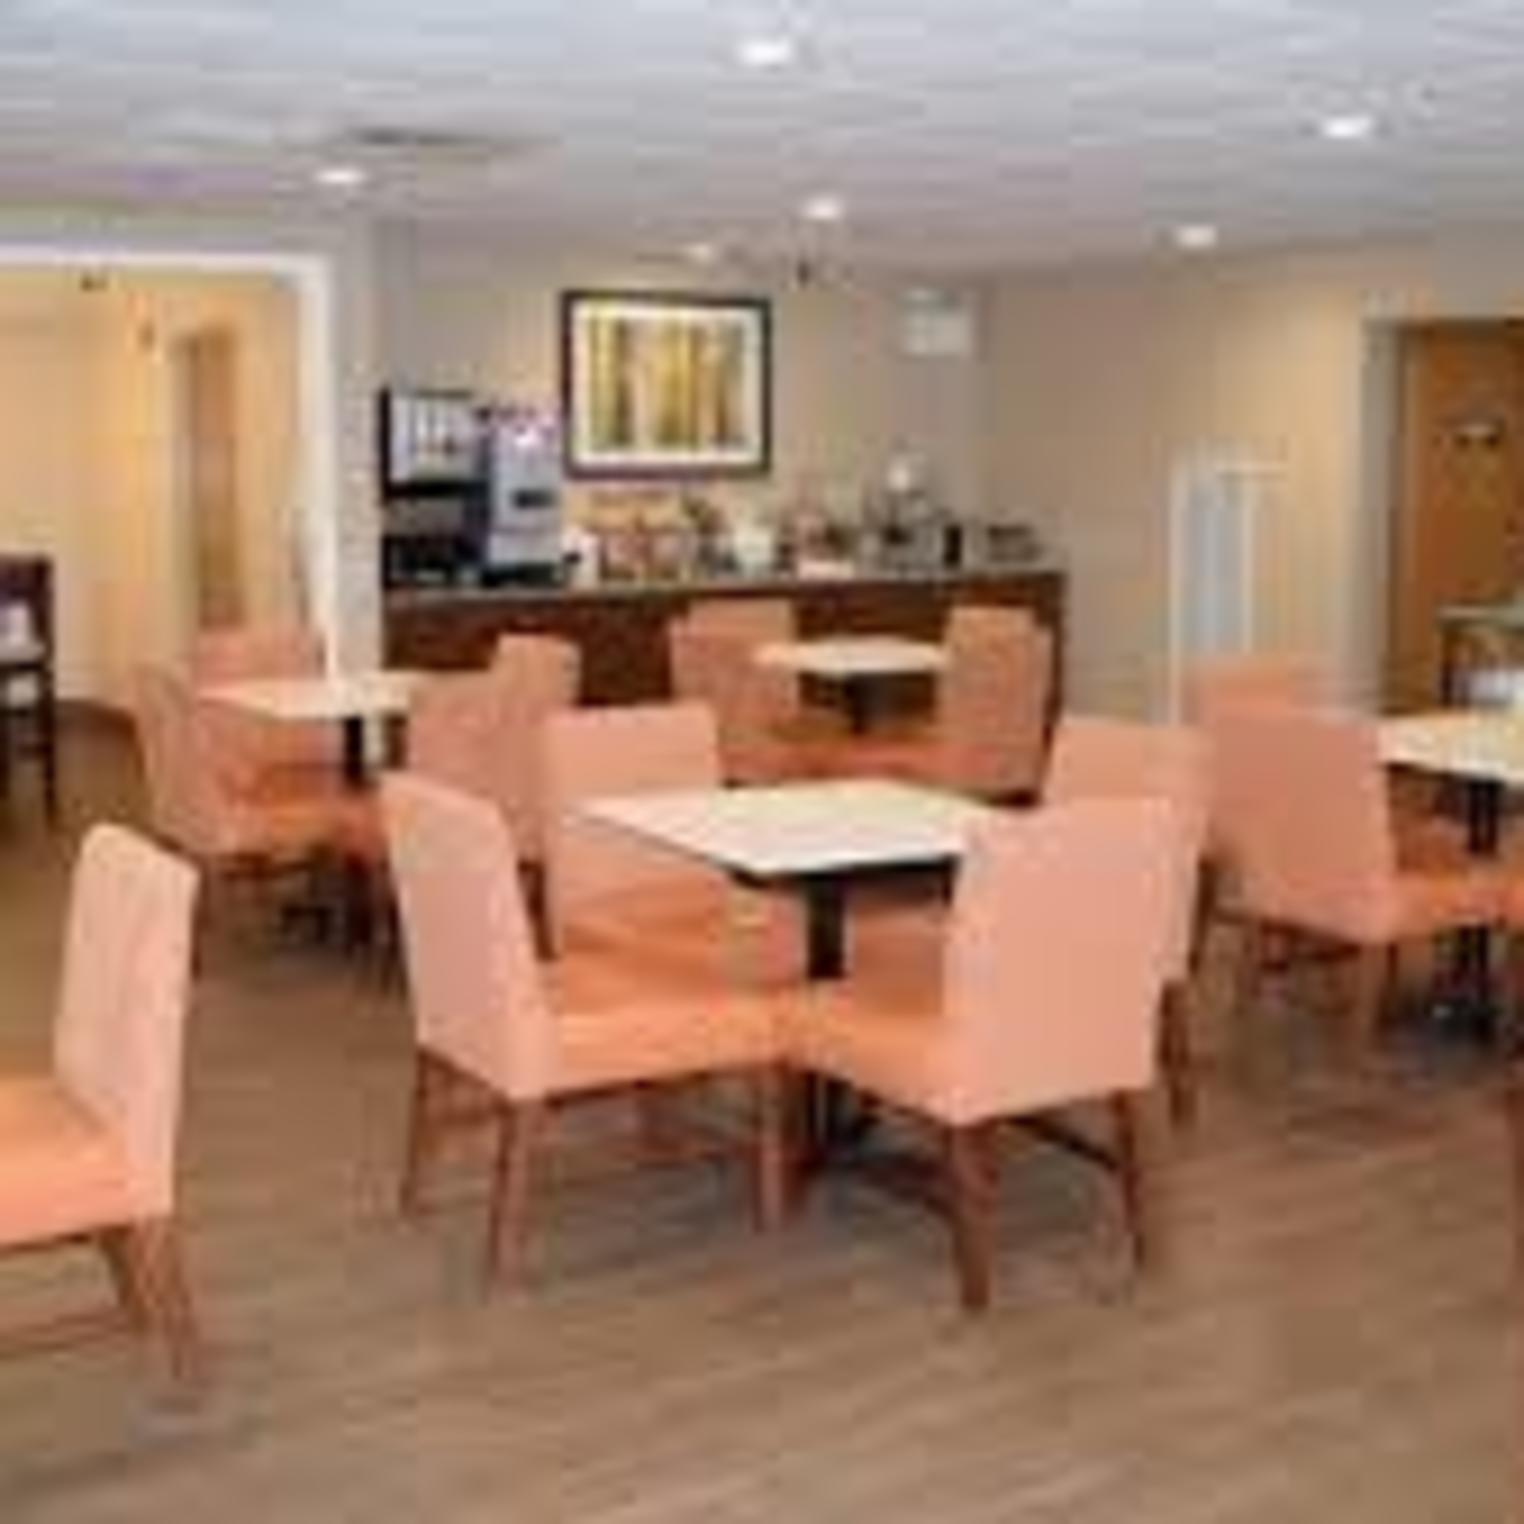 La Qunita Inn & Suites -- Mechanicsburg/Harrisburg